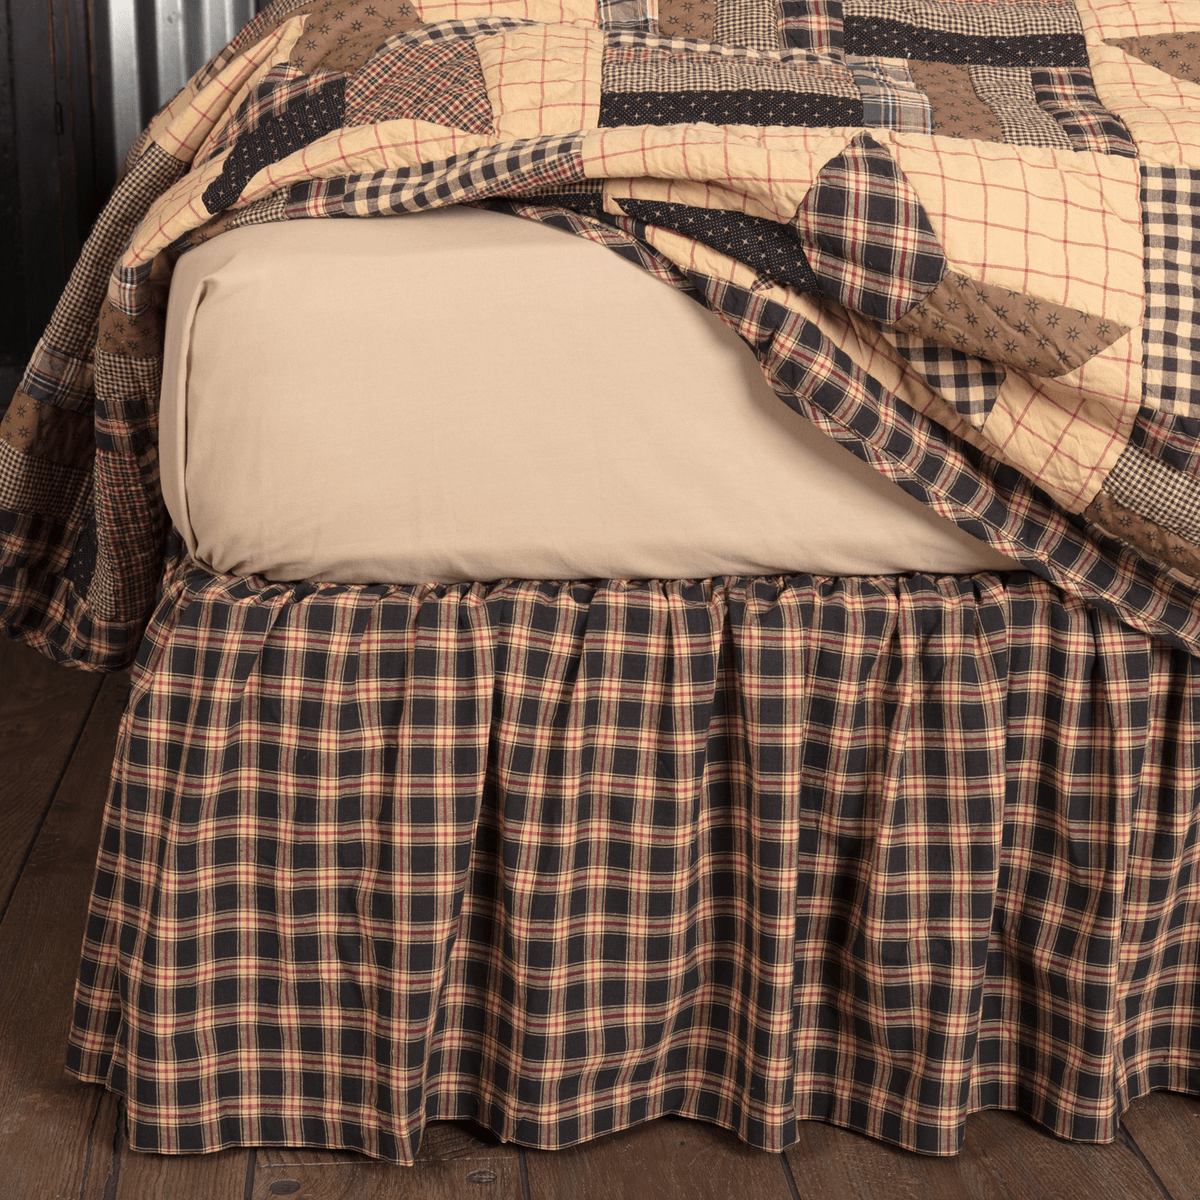 Vhc Rustic Bed Skirt King Queen Twin Dust Ruffle Cotton Plaid Split Corners